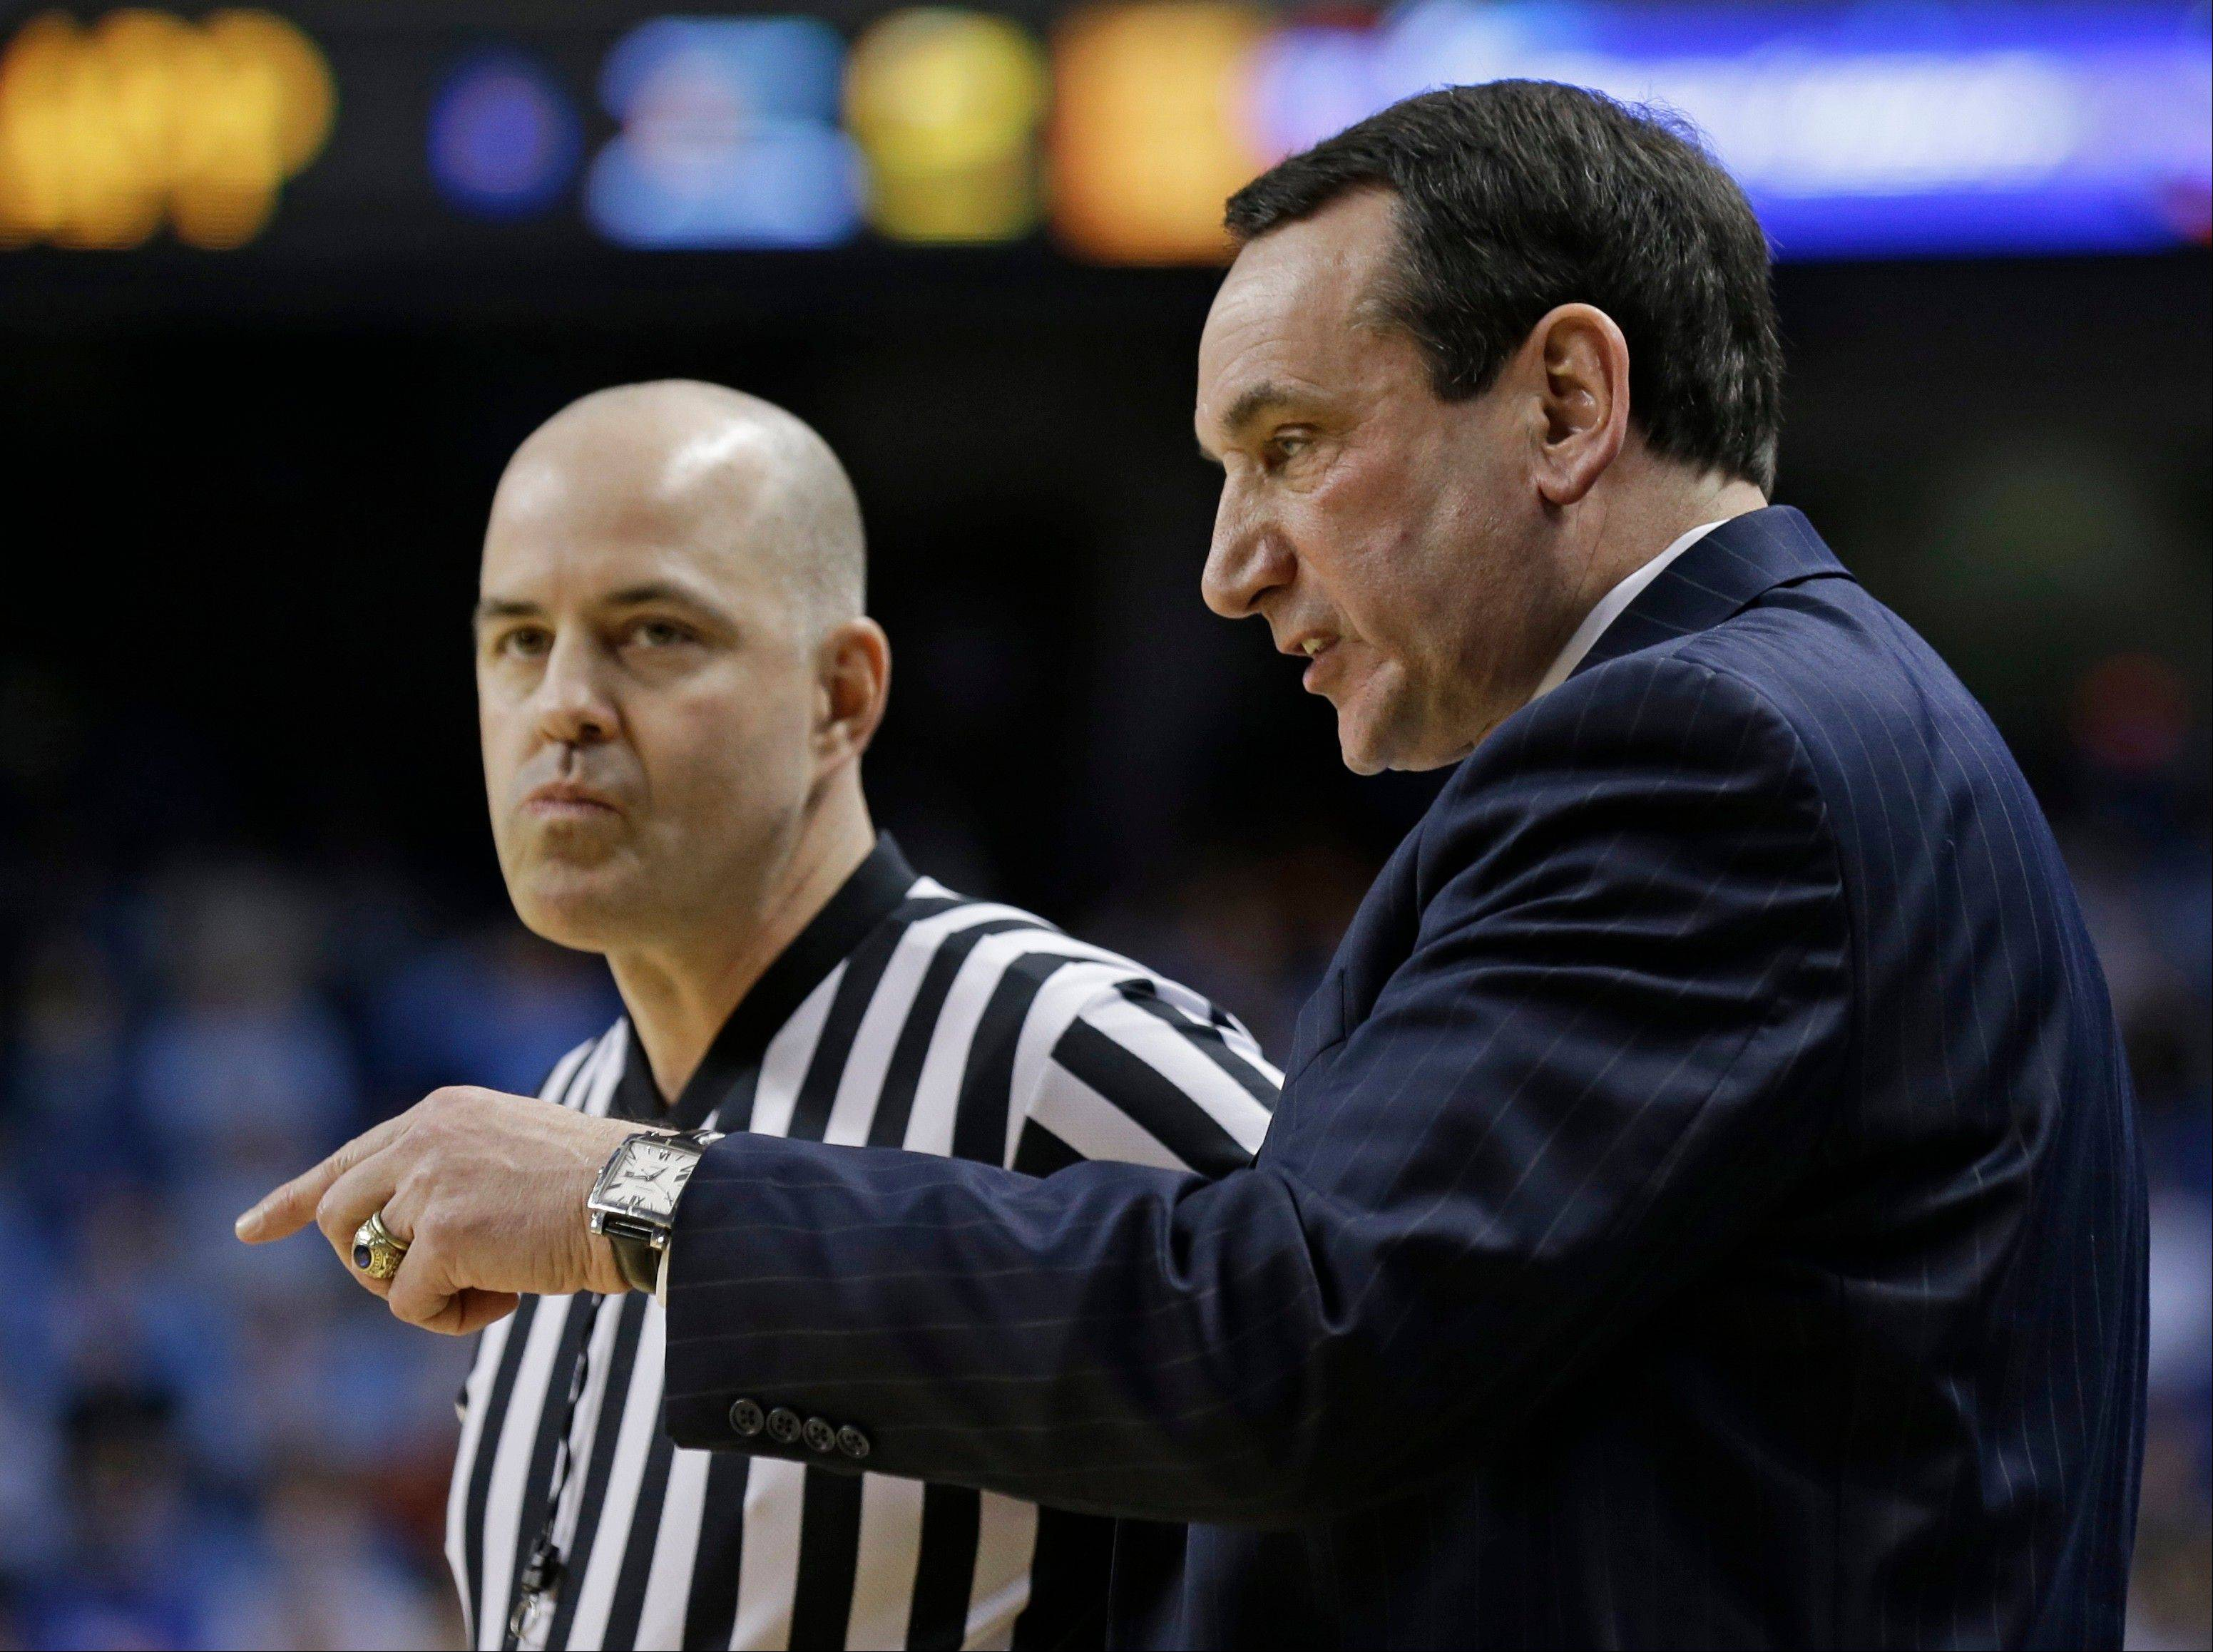 Coach Mike Krzyzewski�s success story at Duke is something Northwestern can only hope to come close to as their search for a new basketball coach begins.